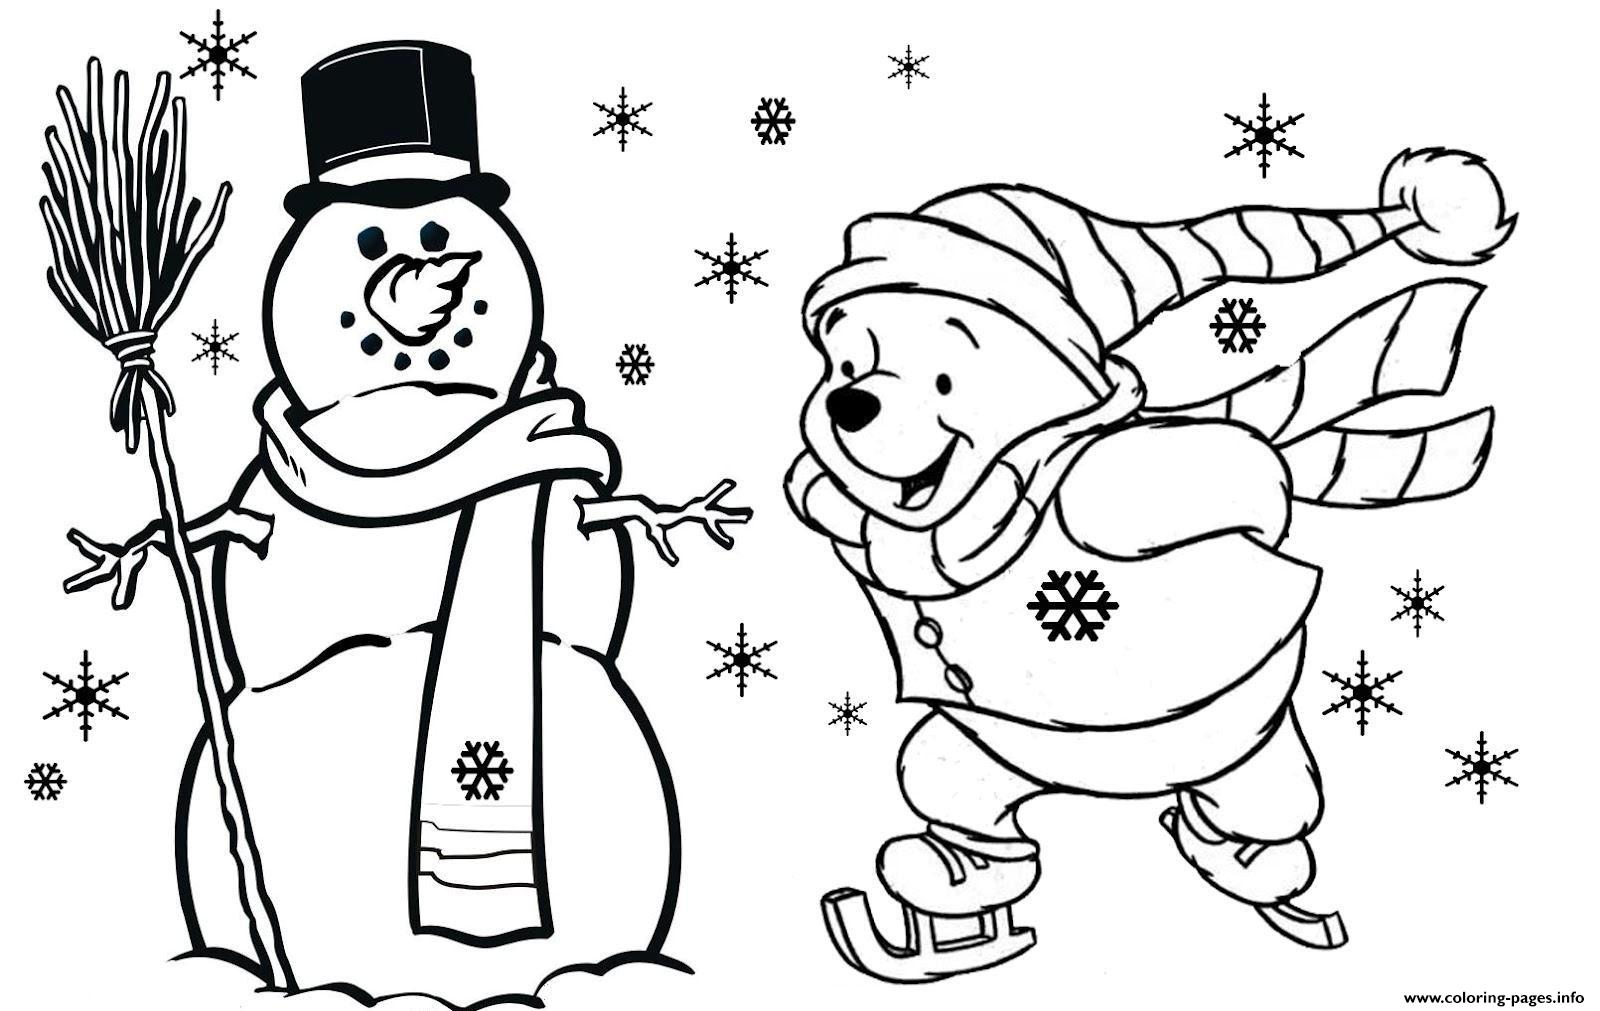 Winnie The Pooh Free Christmas S For Kidsfd59 Coloring Pages ...